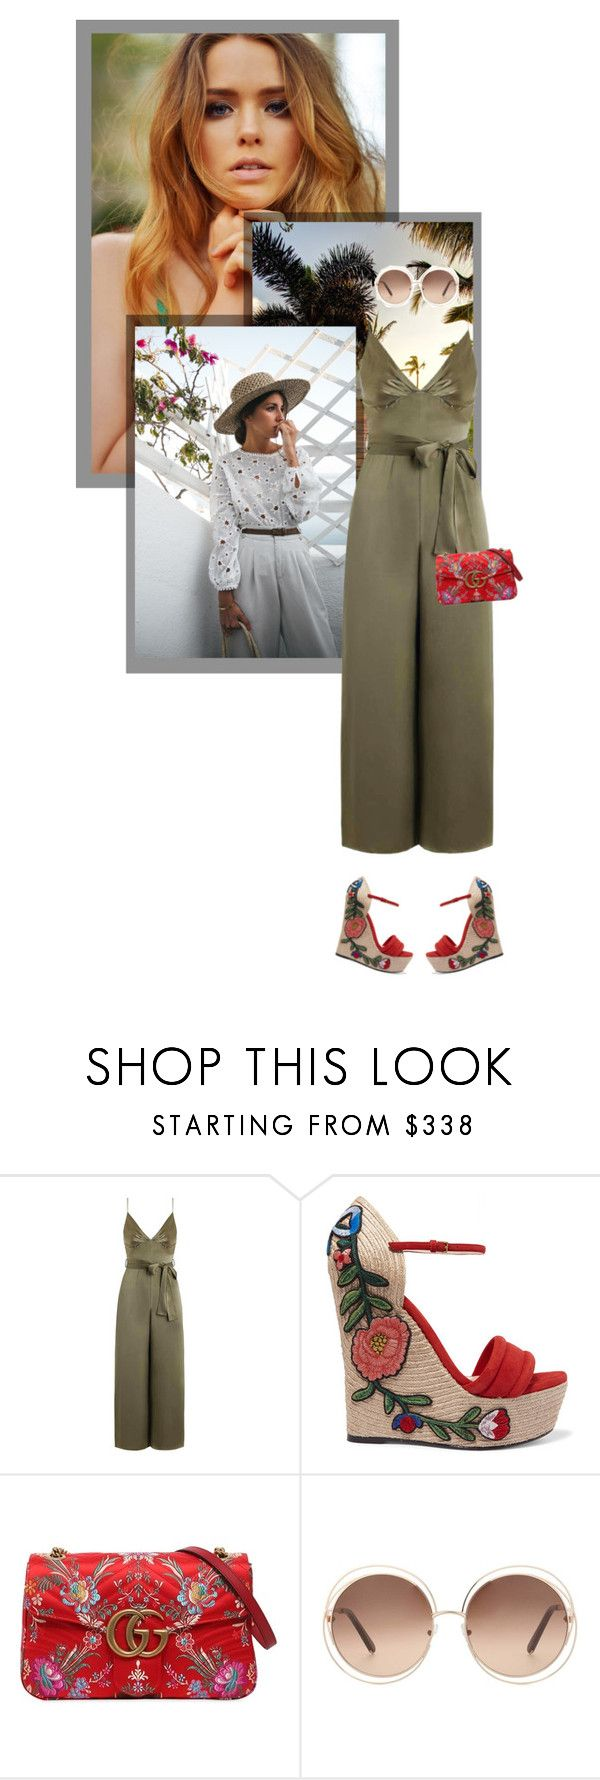 """""""playa sunset hour"""" by itsevaa ❤ liked on Polyvore featuring Zimmermann, Gucci and Chloé"""